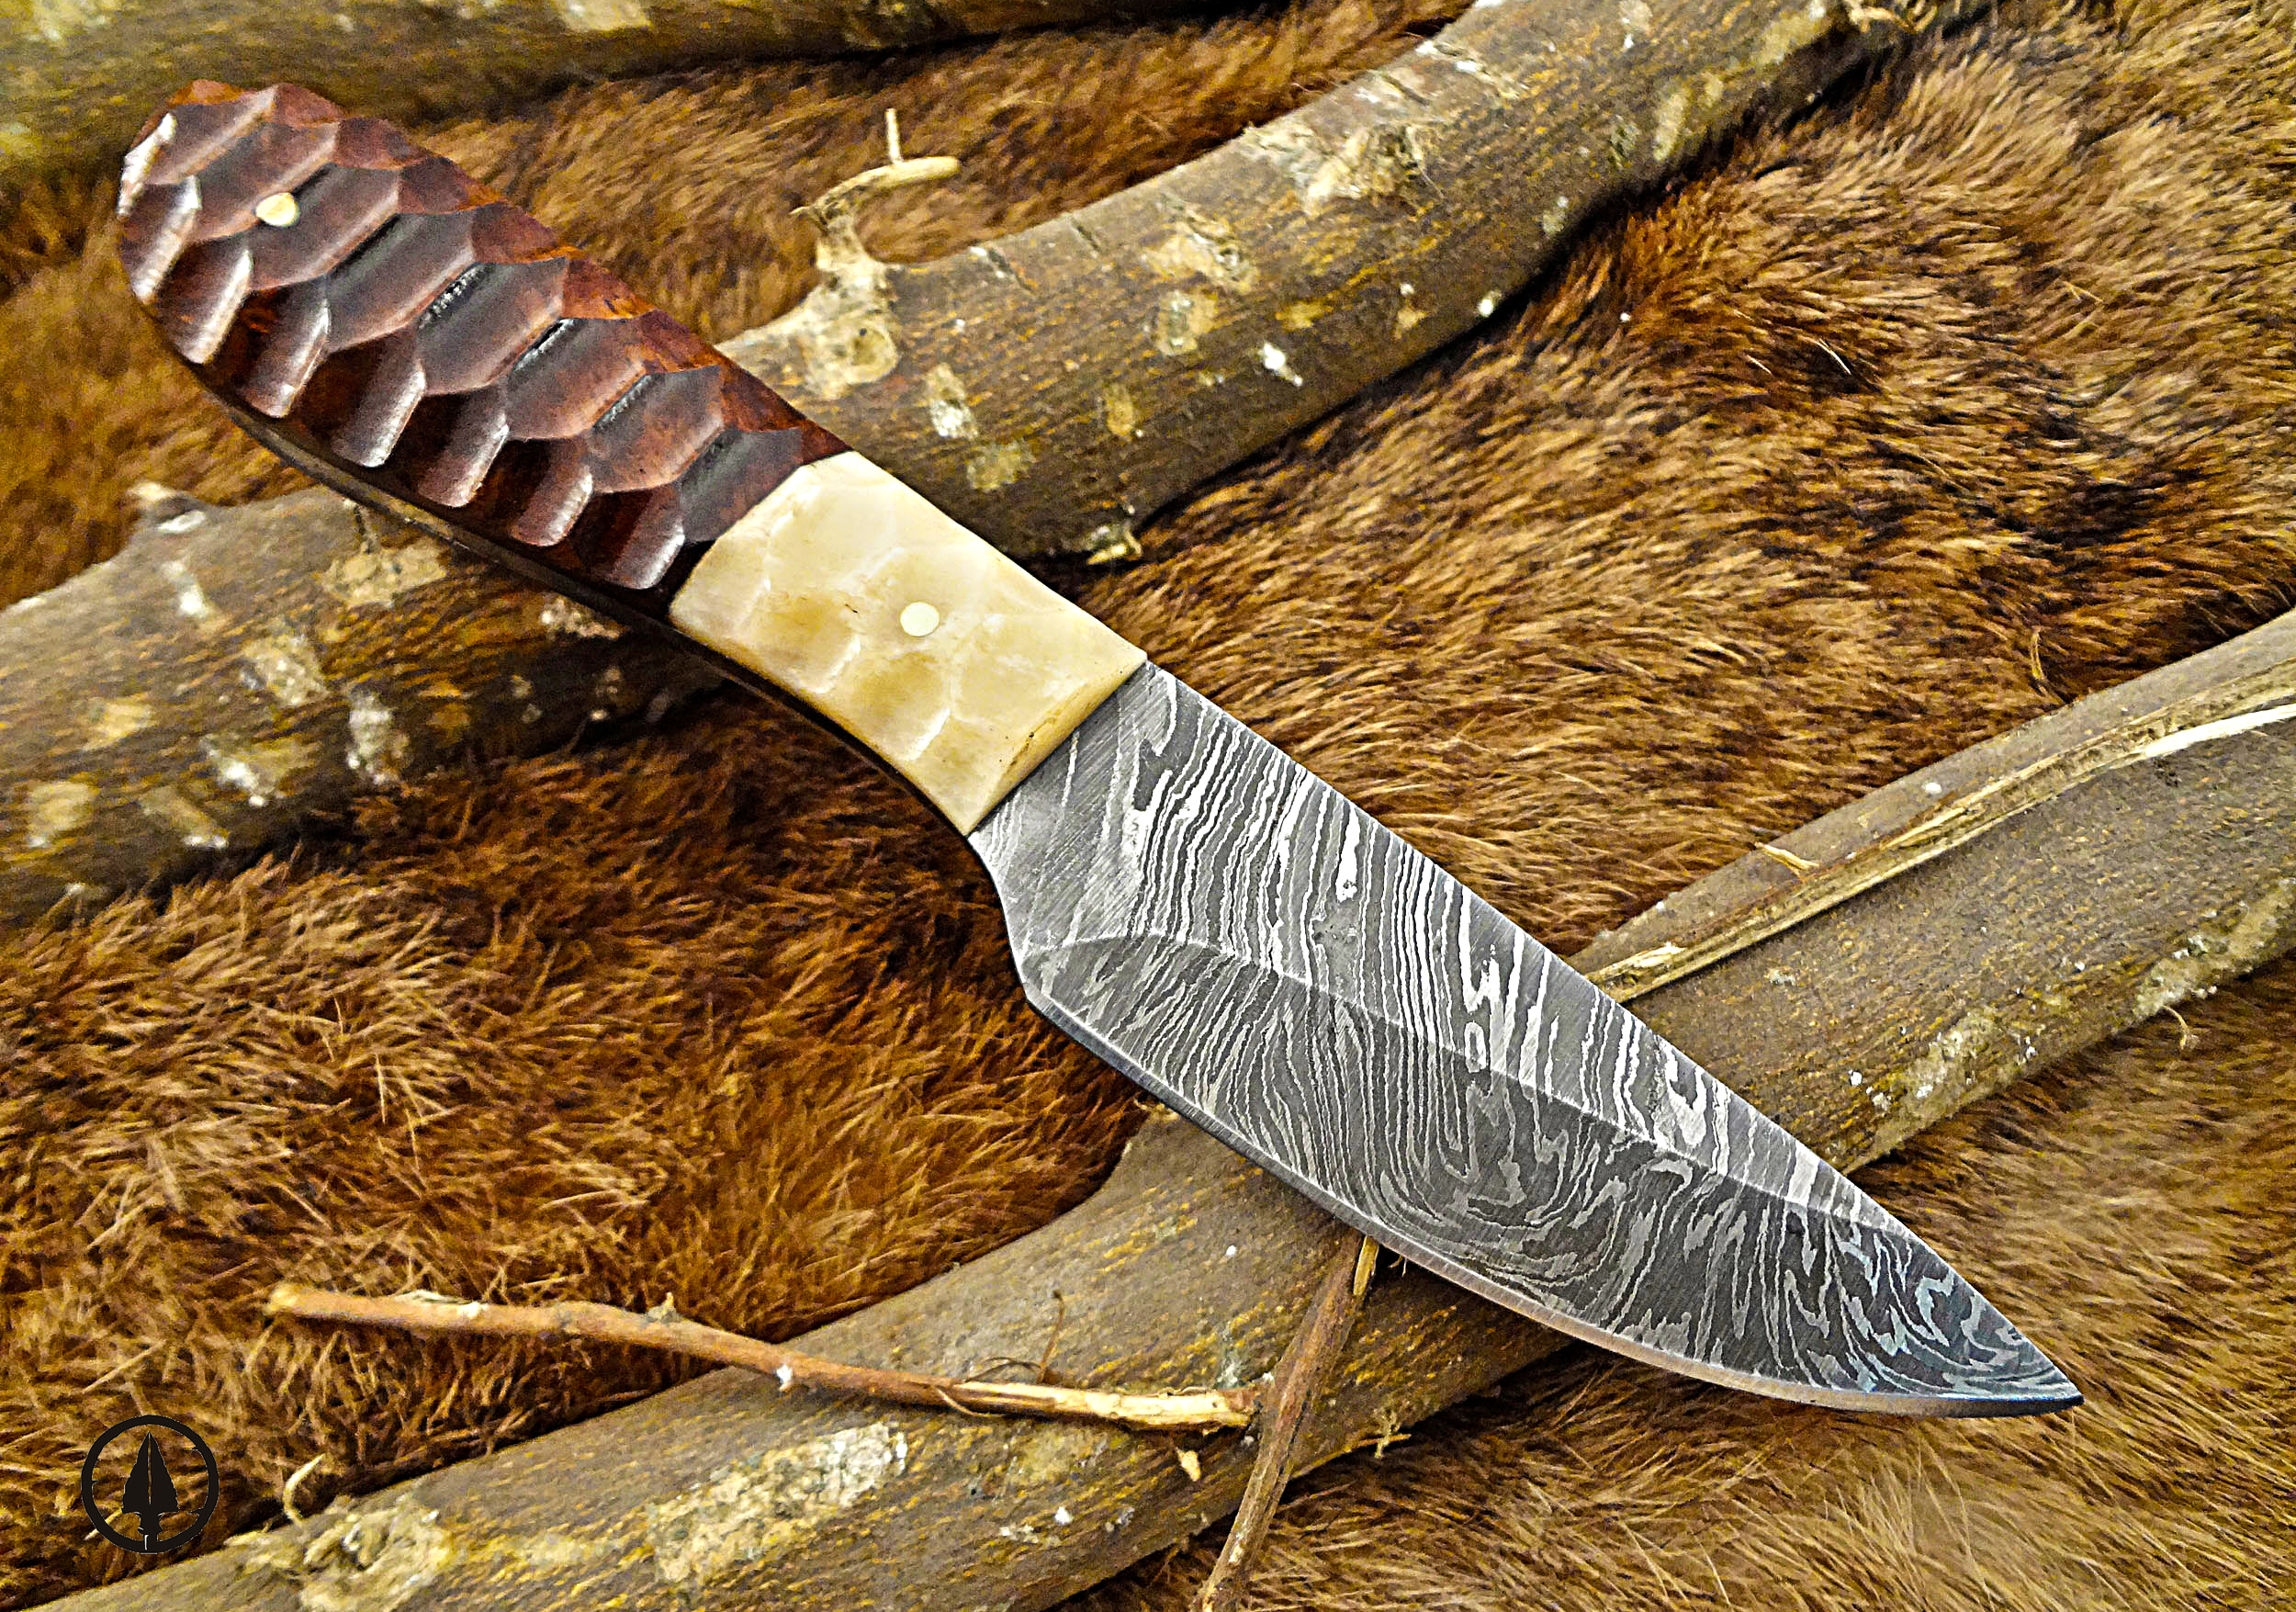 Skinning knife cover photo